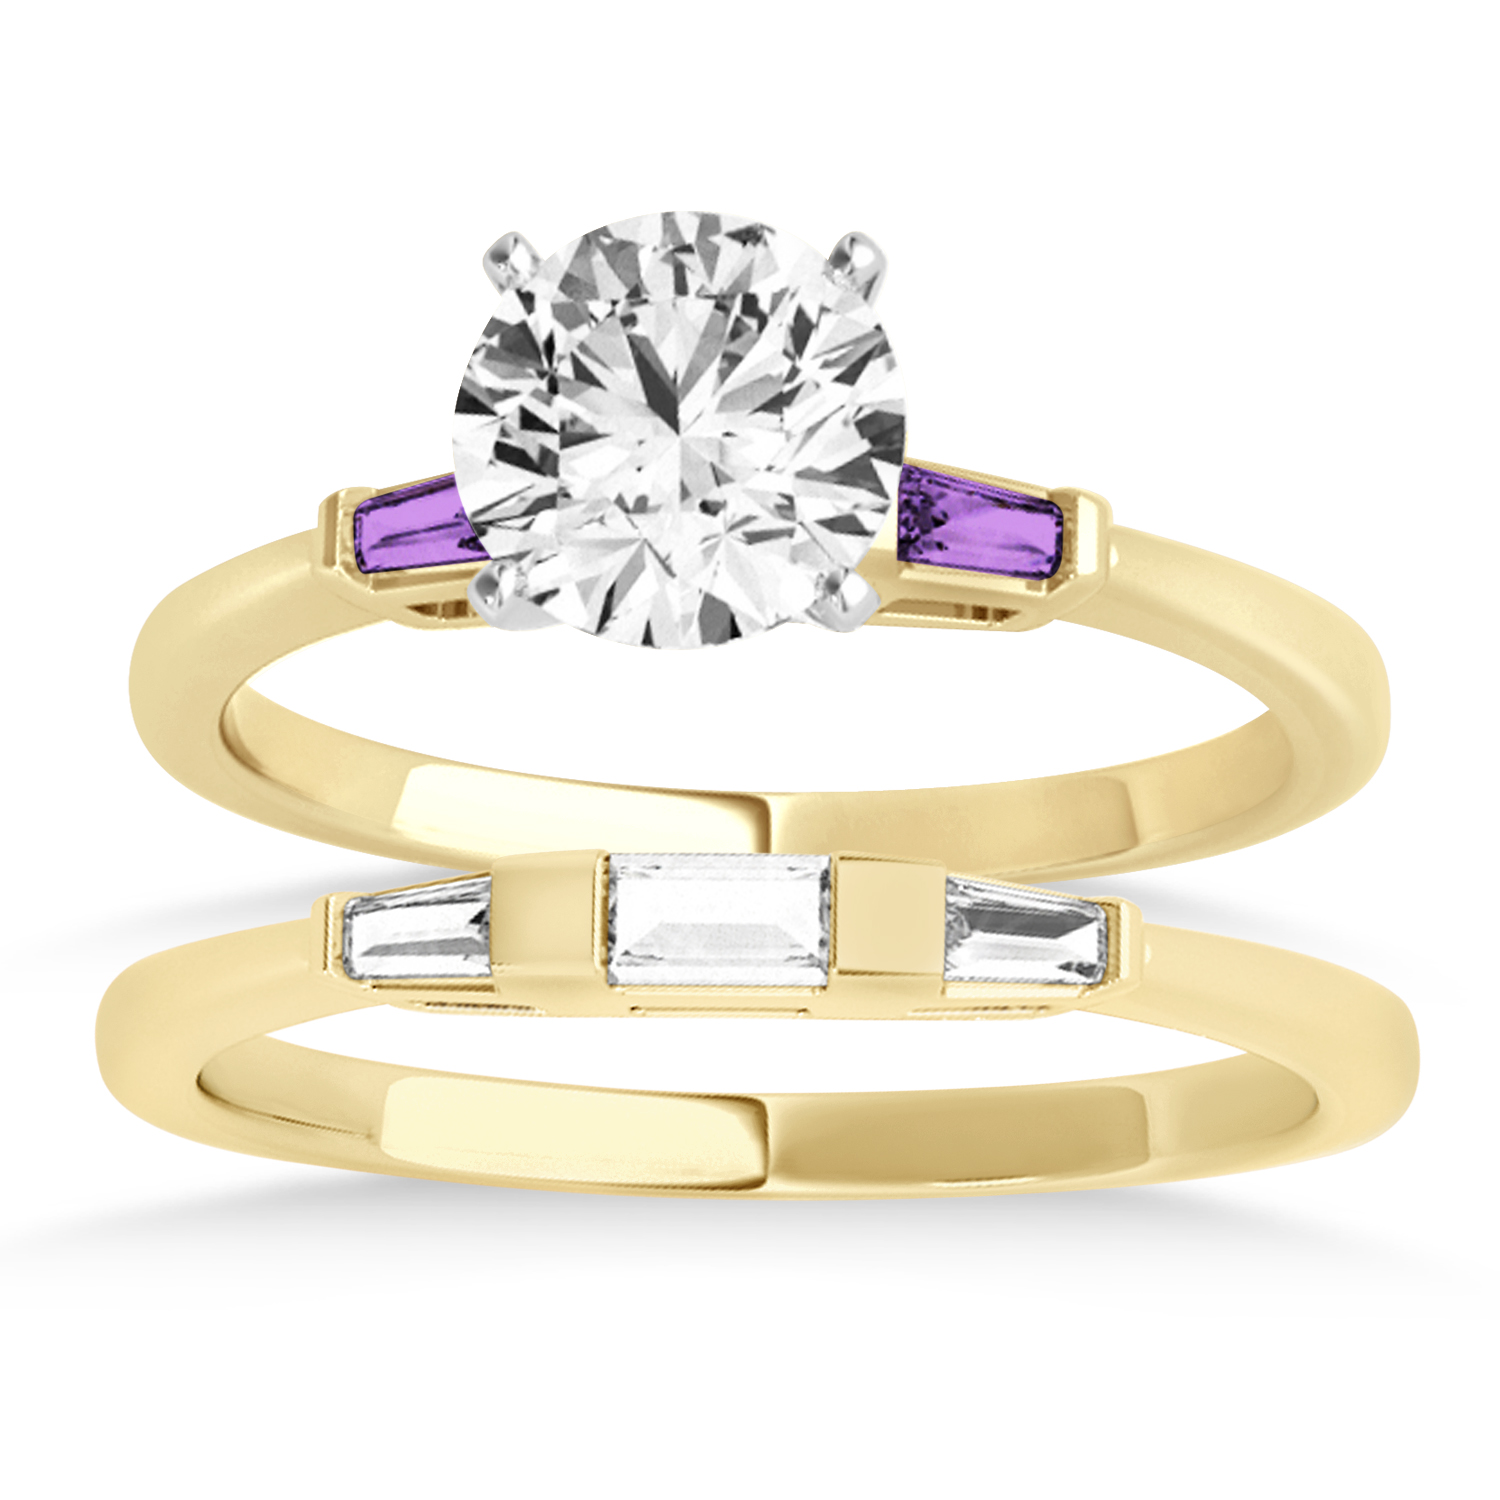 Tapered Baguette 3-Stone Amethyst Bridal Set 18k Yellow Gold (0.30ct)